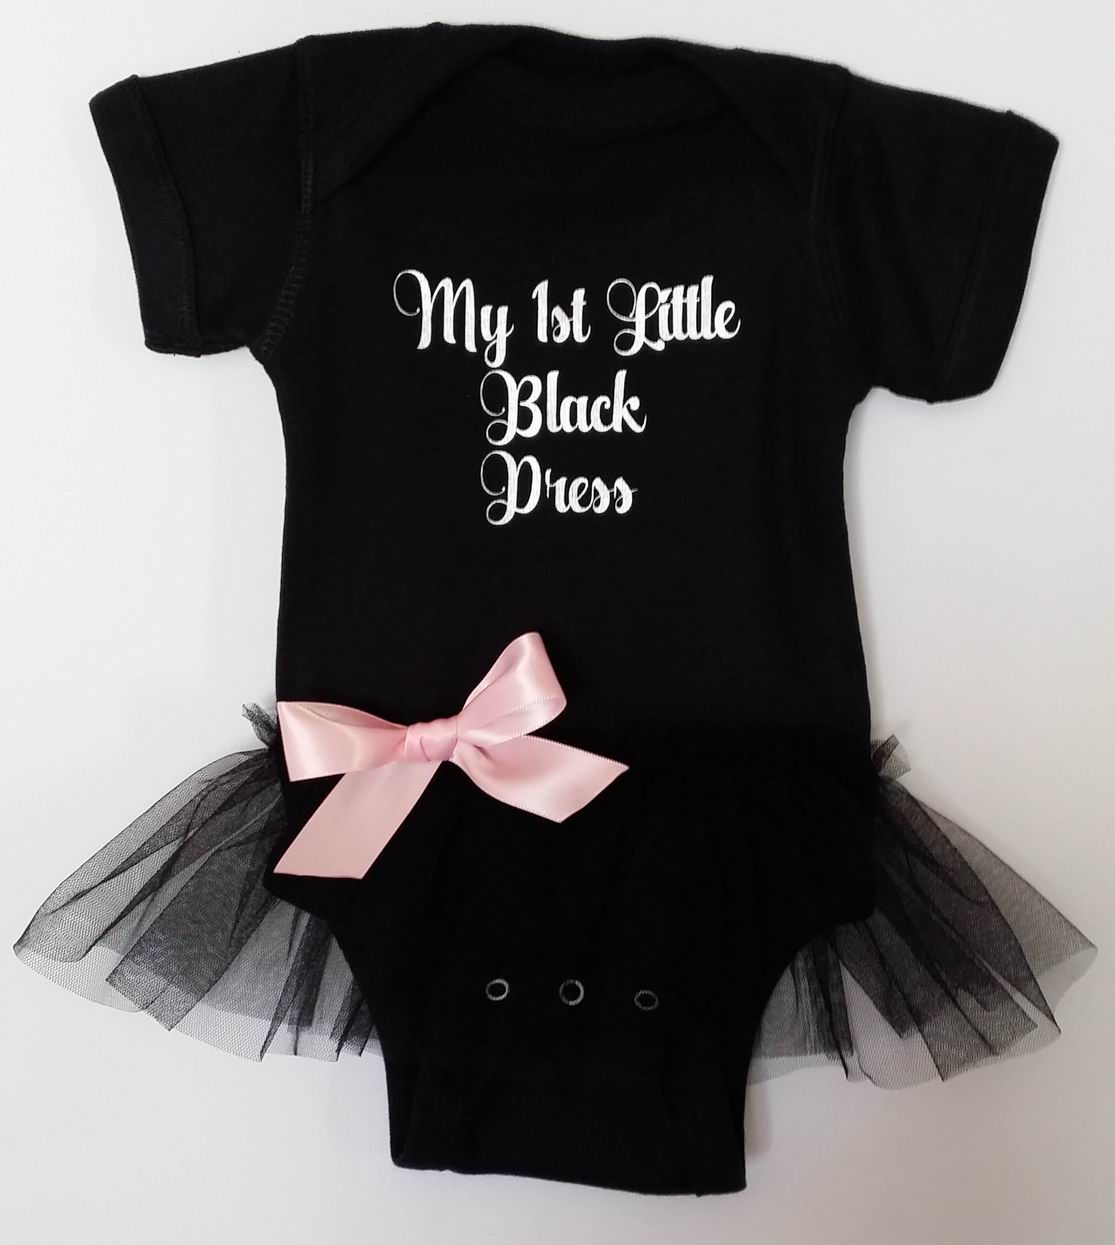 My 1st Little Black Dress